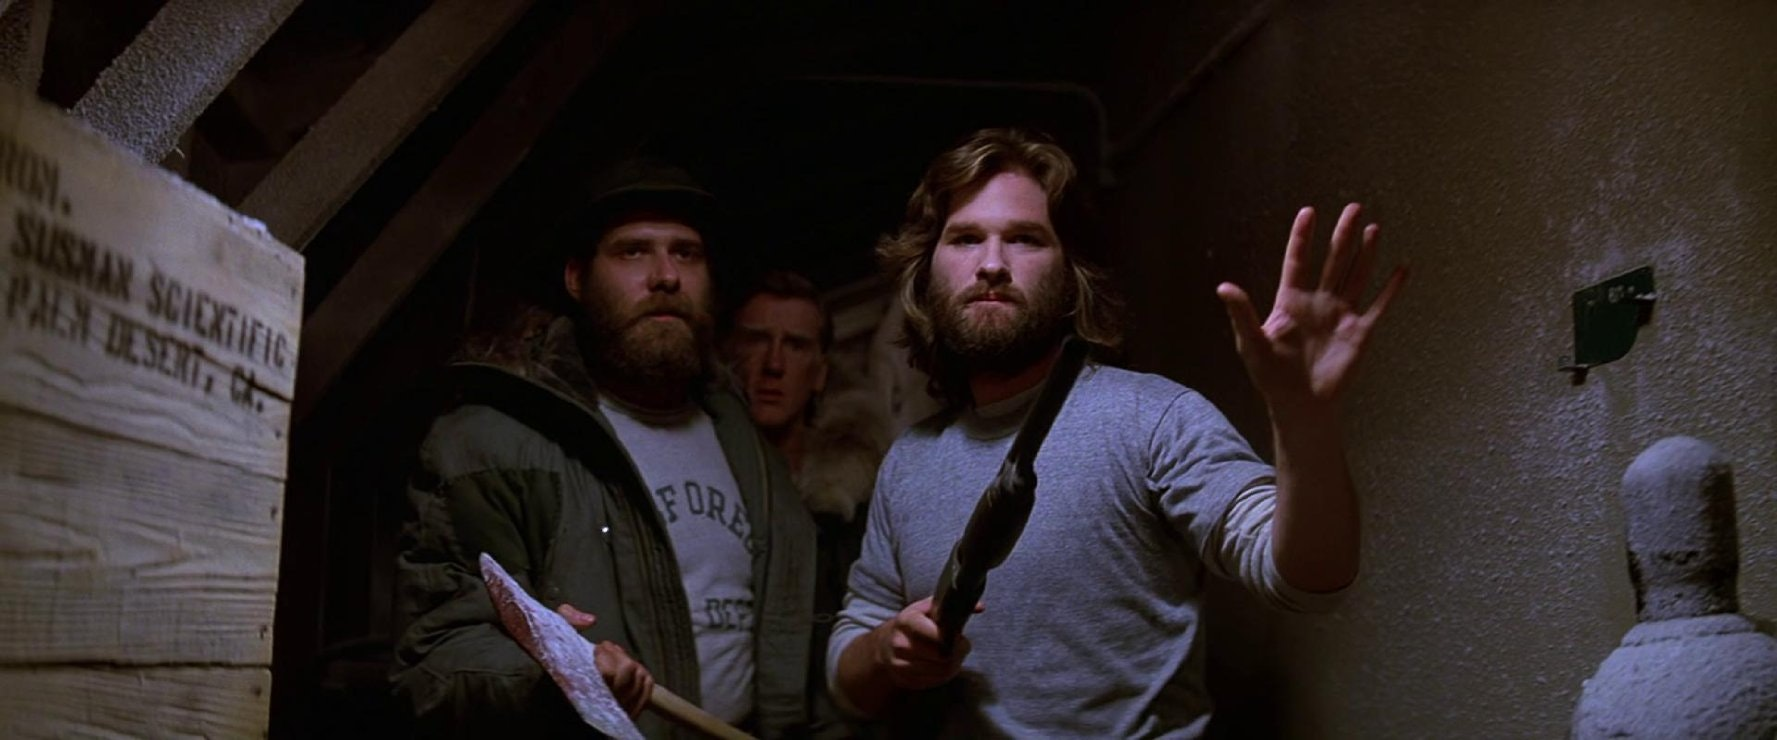 Kurt Russell, Richard Masur, and Donald Moffat in The Thing.